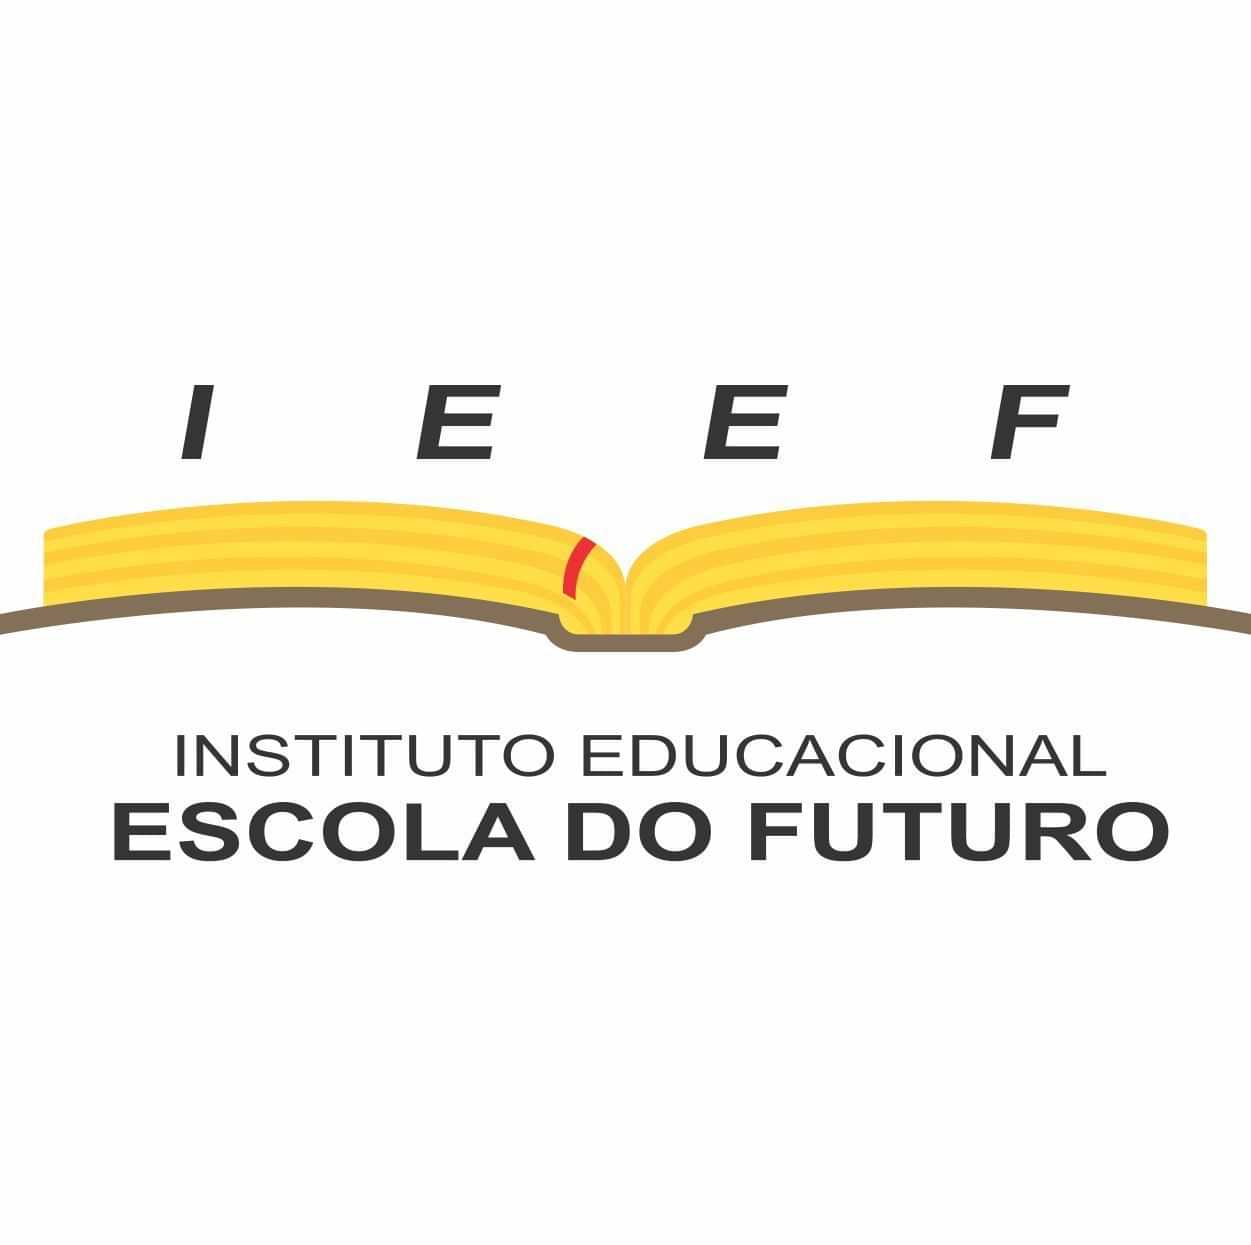 Escola do Futuro